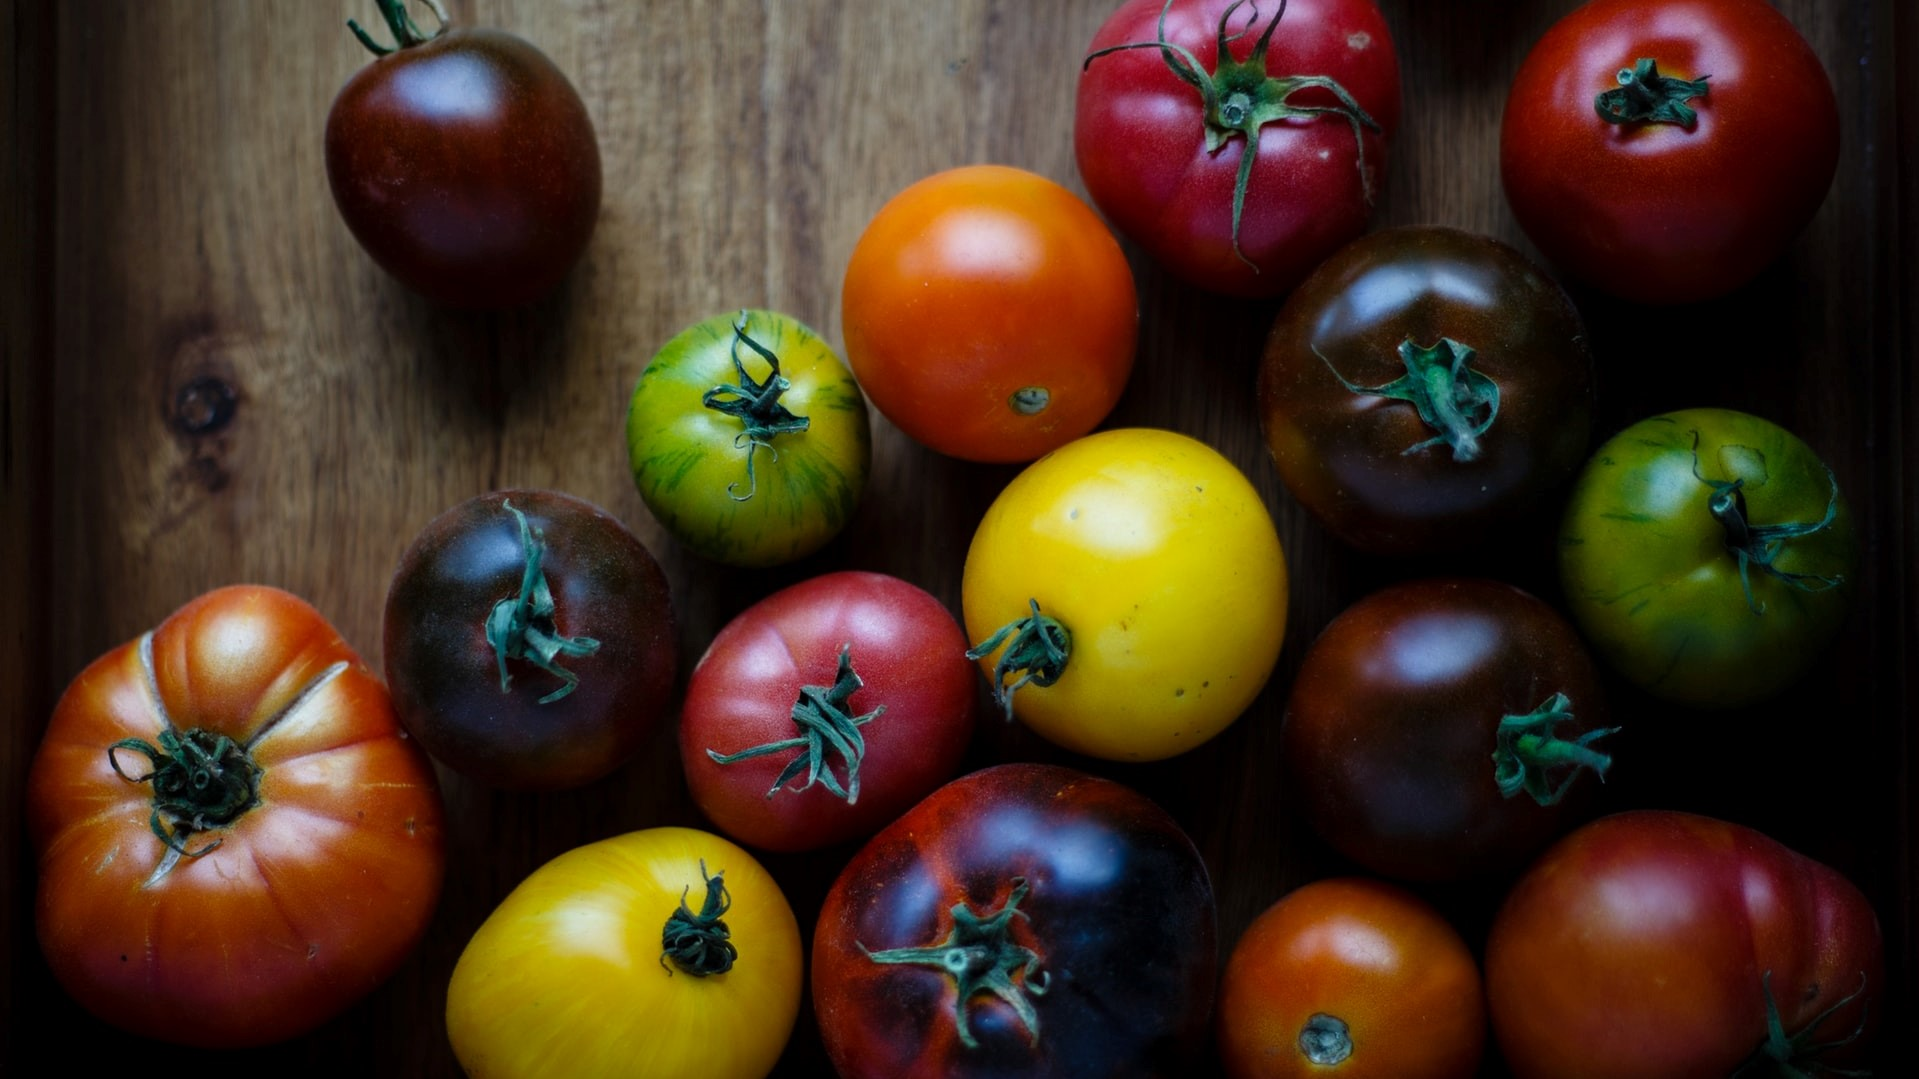 Dr. Mike and His Heirloom Tomatoes